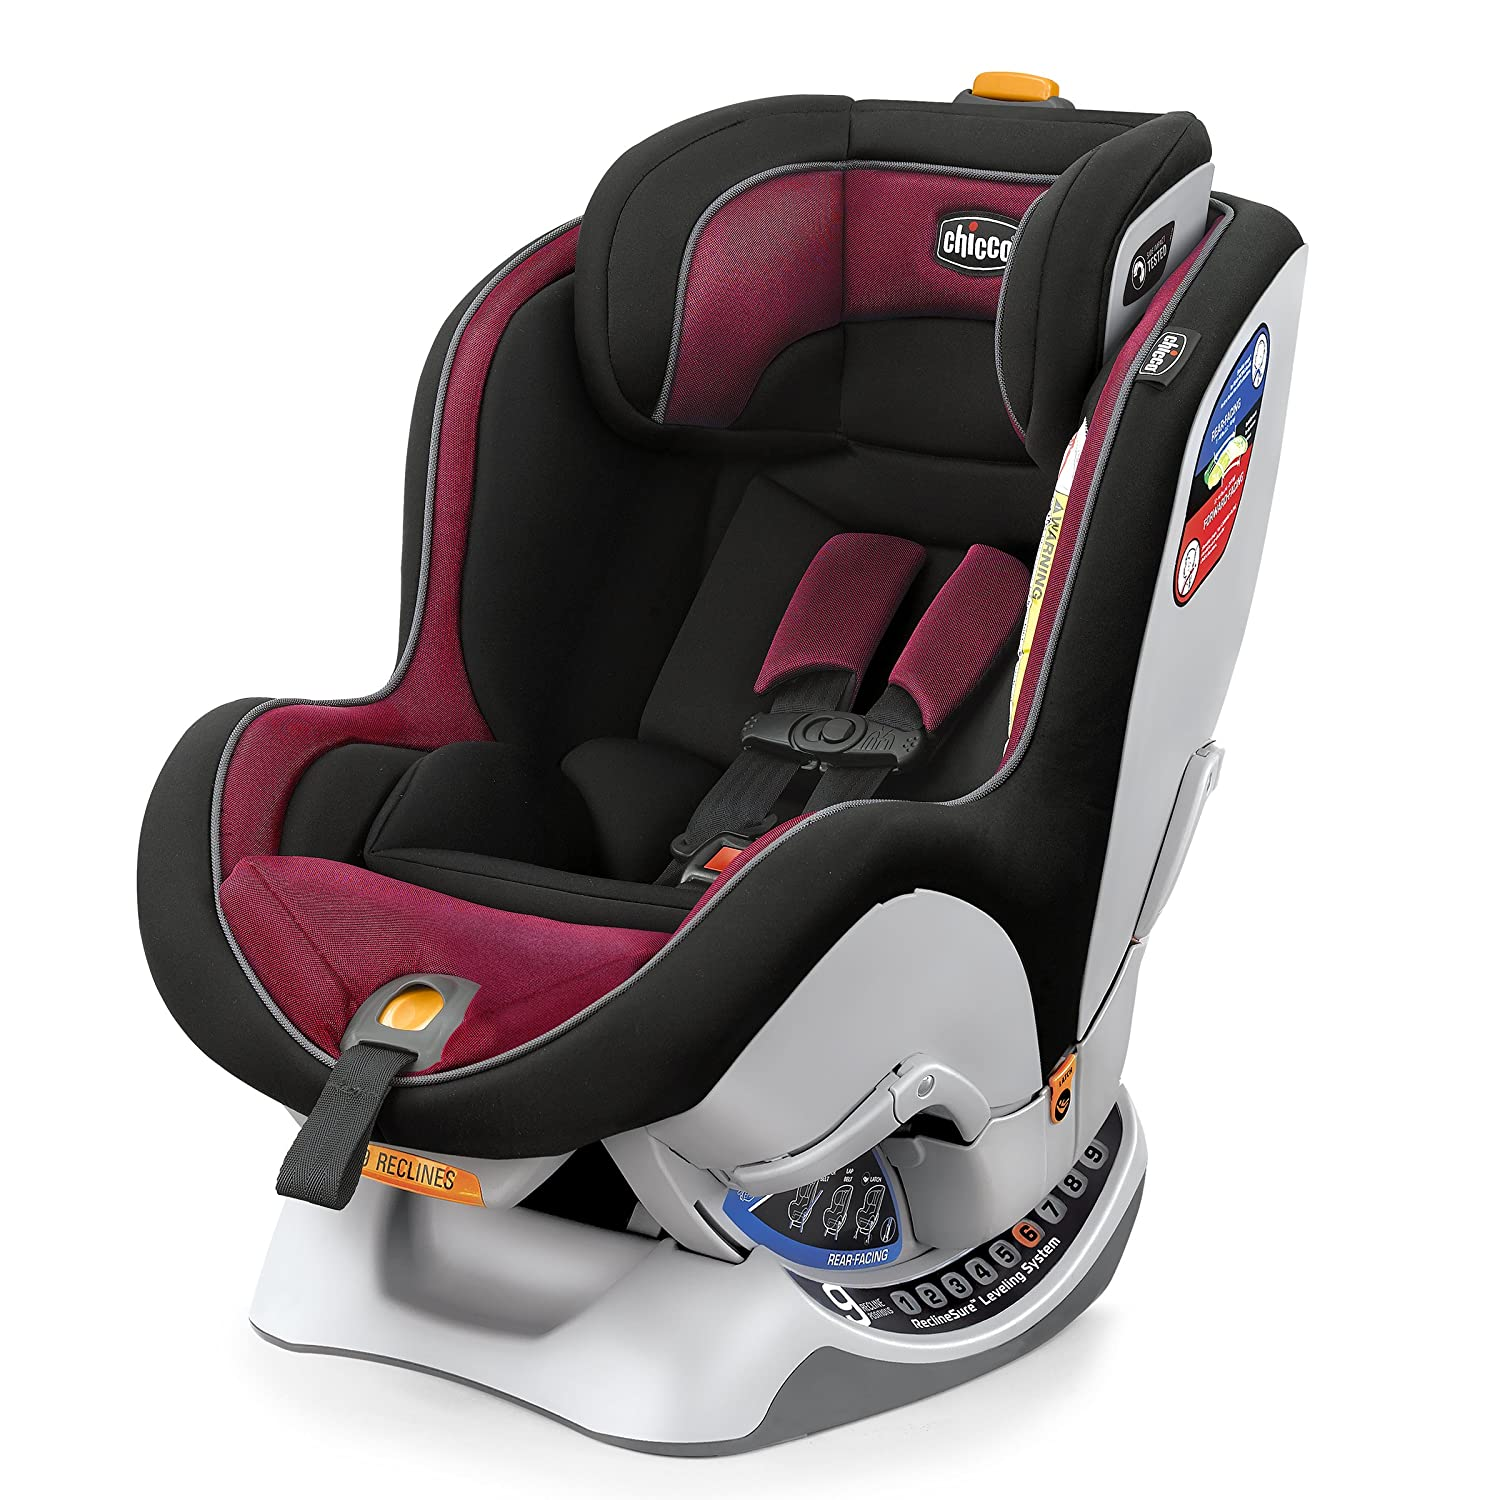 Best Convertible Car Seat For Small Cars 2019